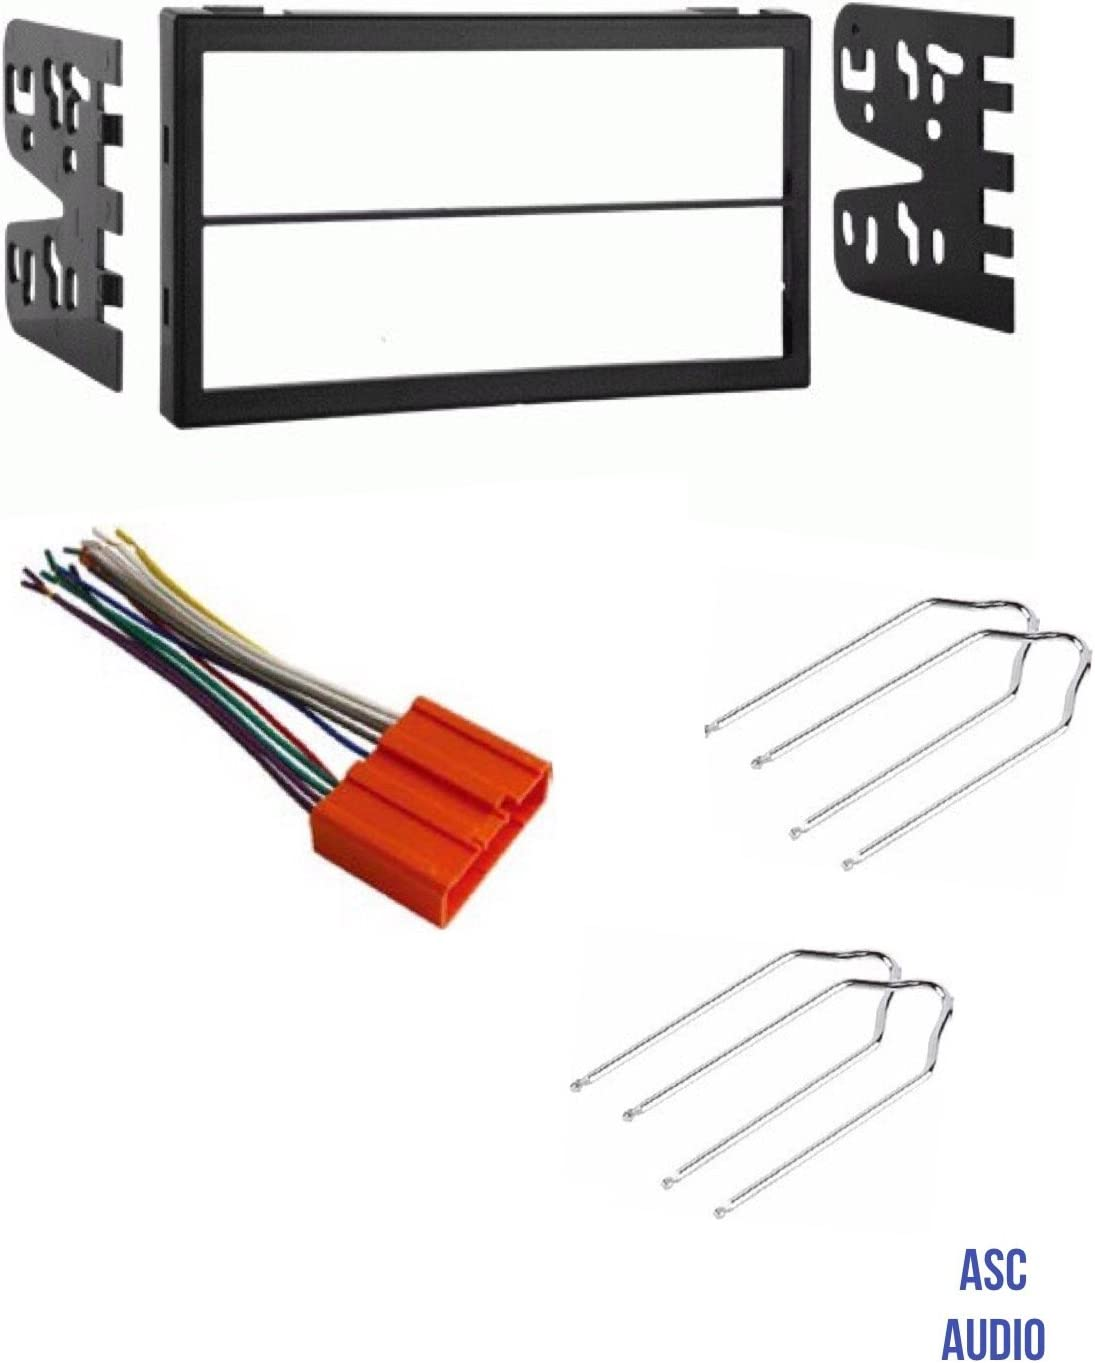 Amazon.com: ASC Car Stereo Dash Install Kit, Wire Harness, and Radio Tool  for Installing a Double Din Aftermarket Radio for Some Mazda Vehicles -  Important: Read Compatible Vehicles and Restrictions Listed Below:Amazon.com